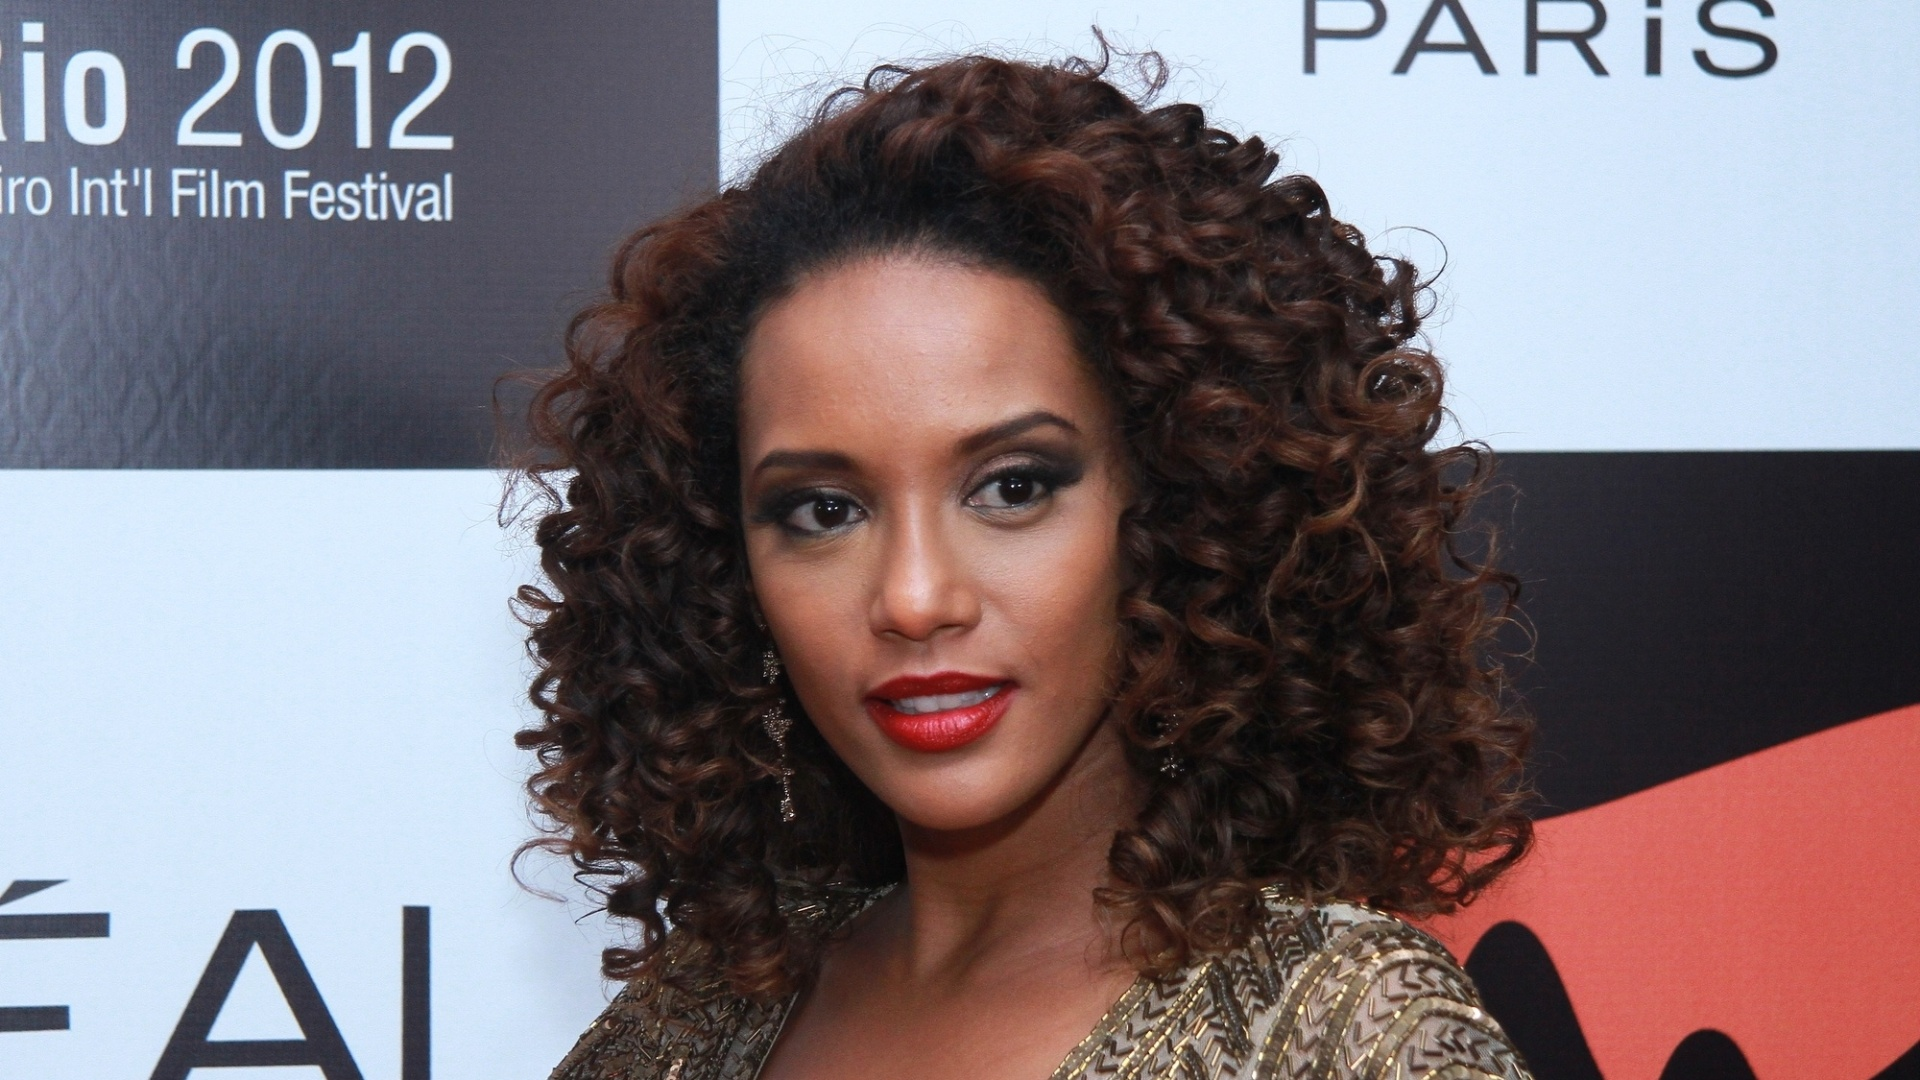 Tais Araujo Net Worth